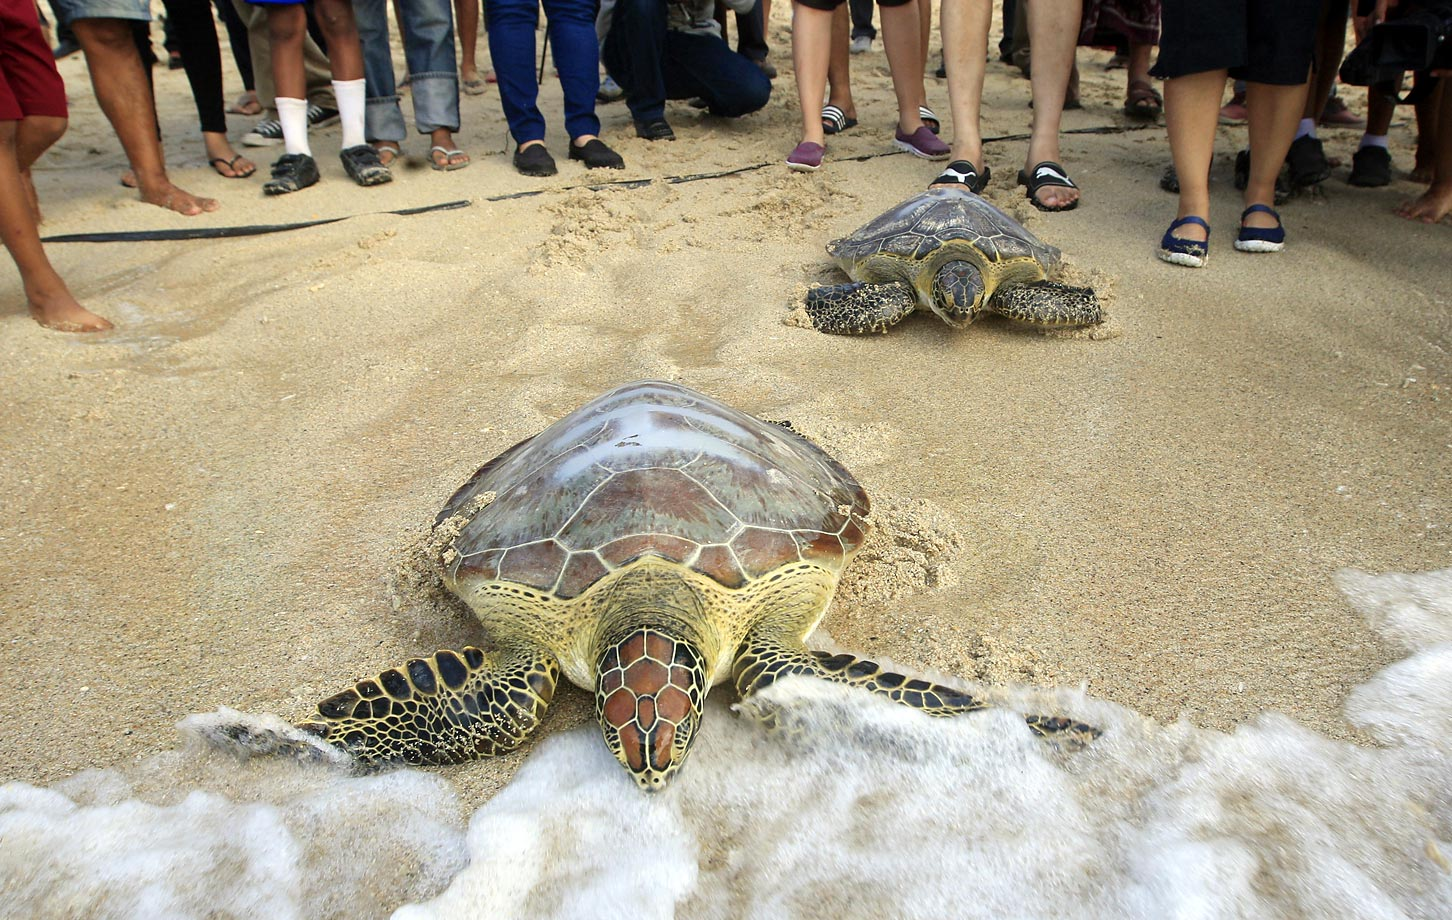 Turtles race into the ocean in Bali during a campaign to save sea turtles.